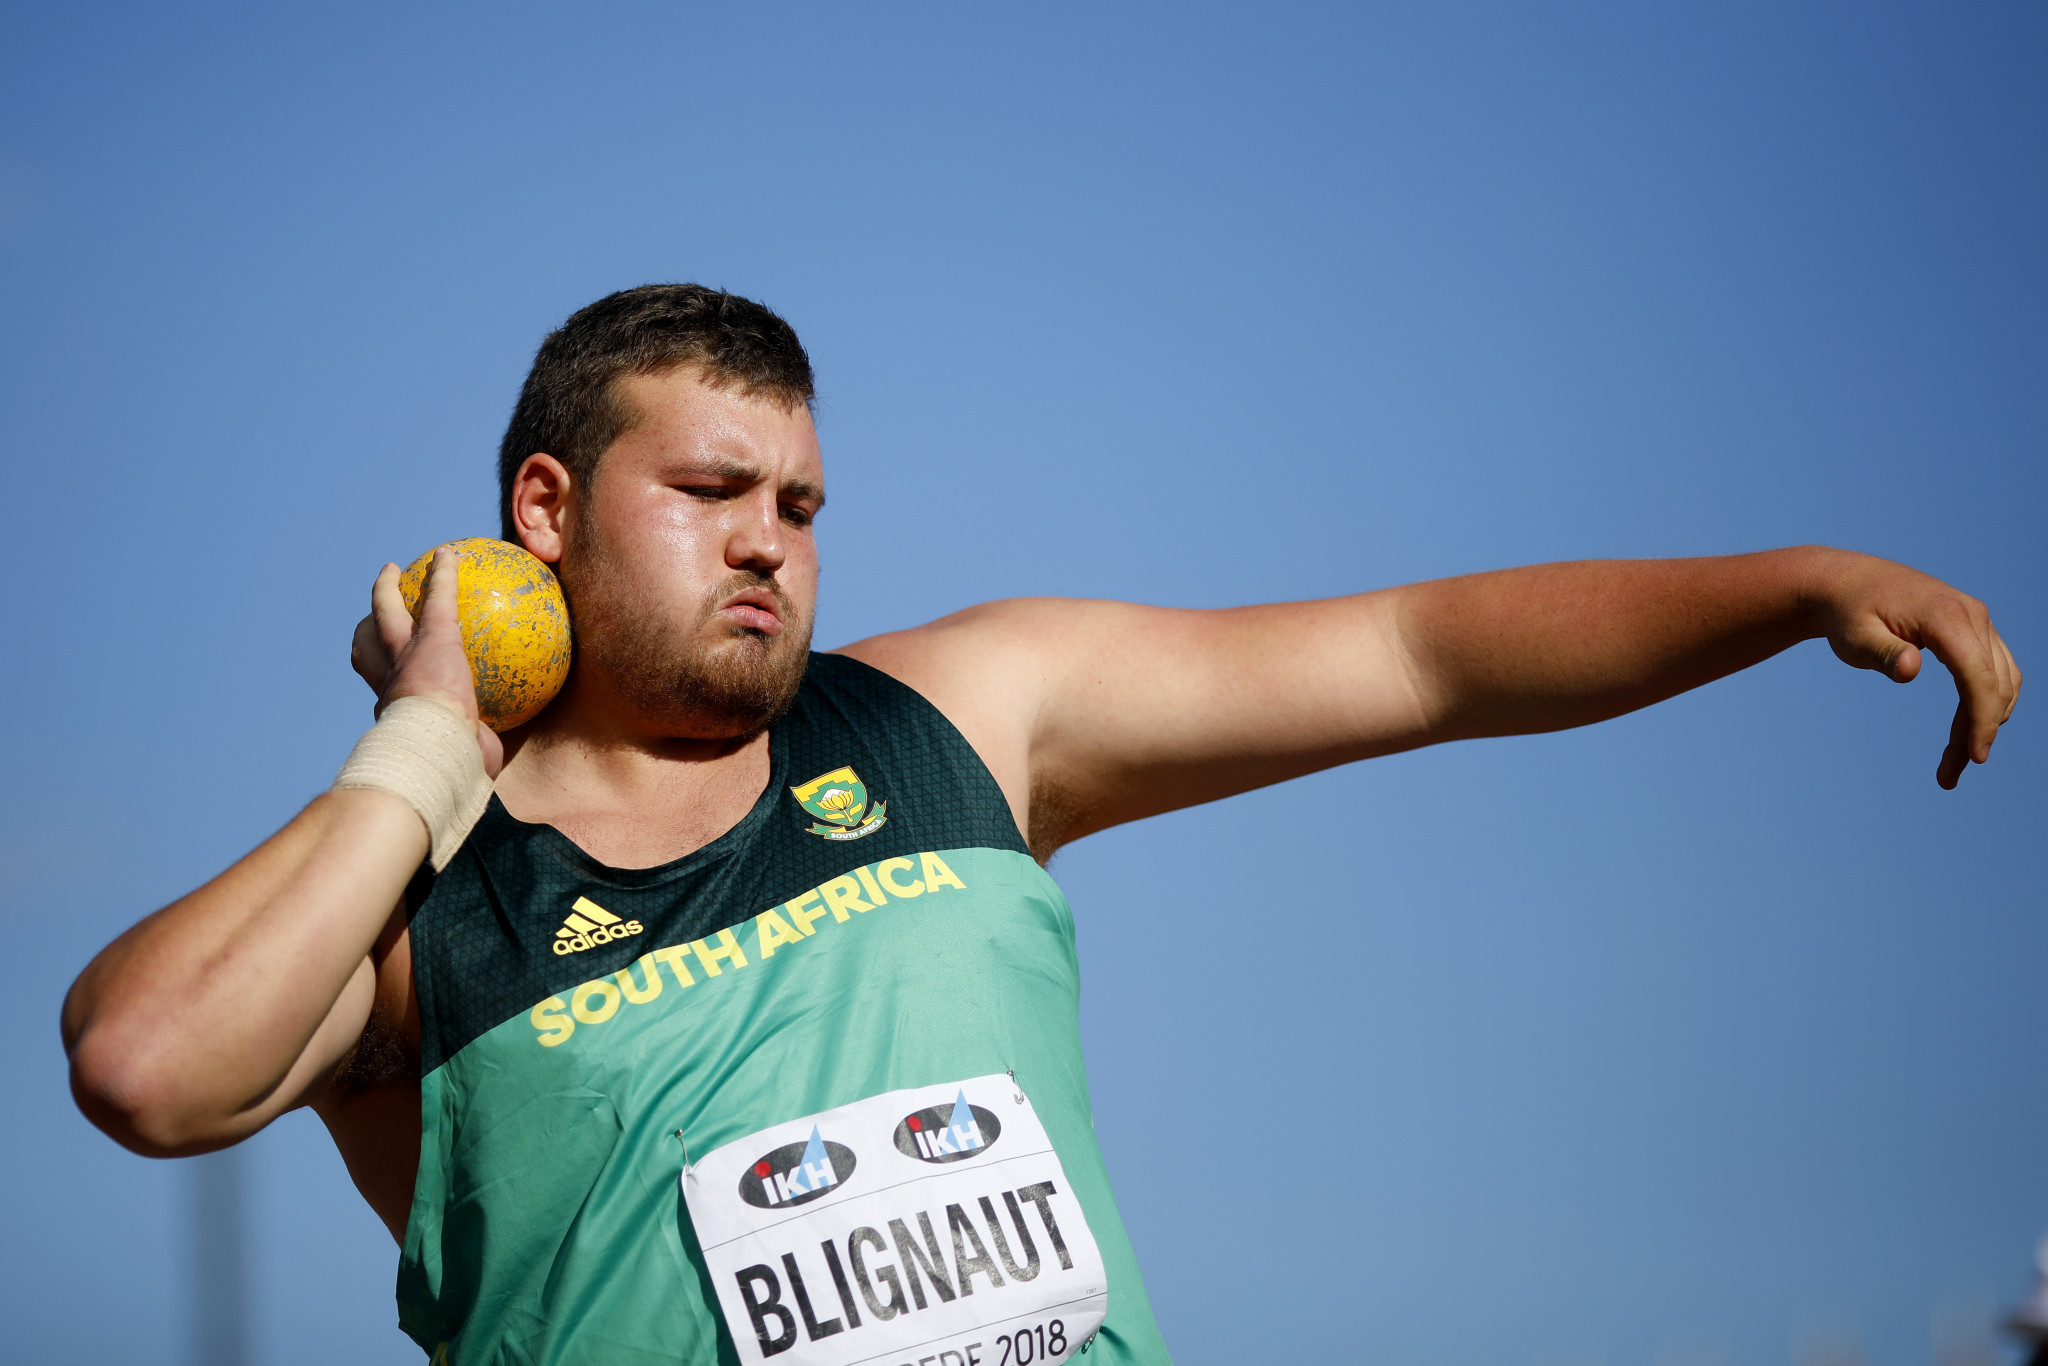 Kyle Blignaut of South Africa won the men's shot put on day one of the  IAAF World Under-20 Championships ©Getty Images